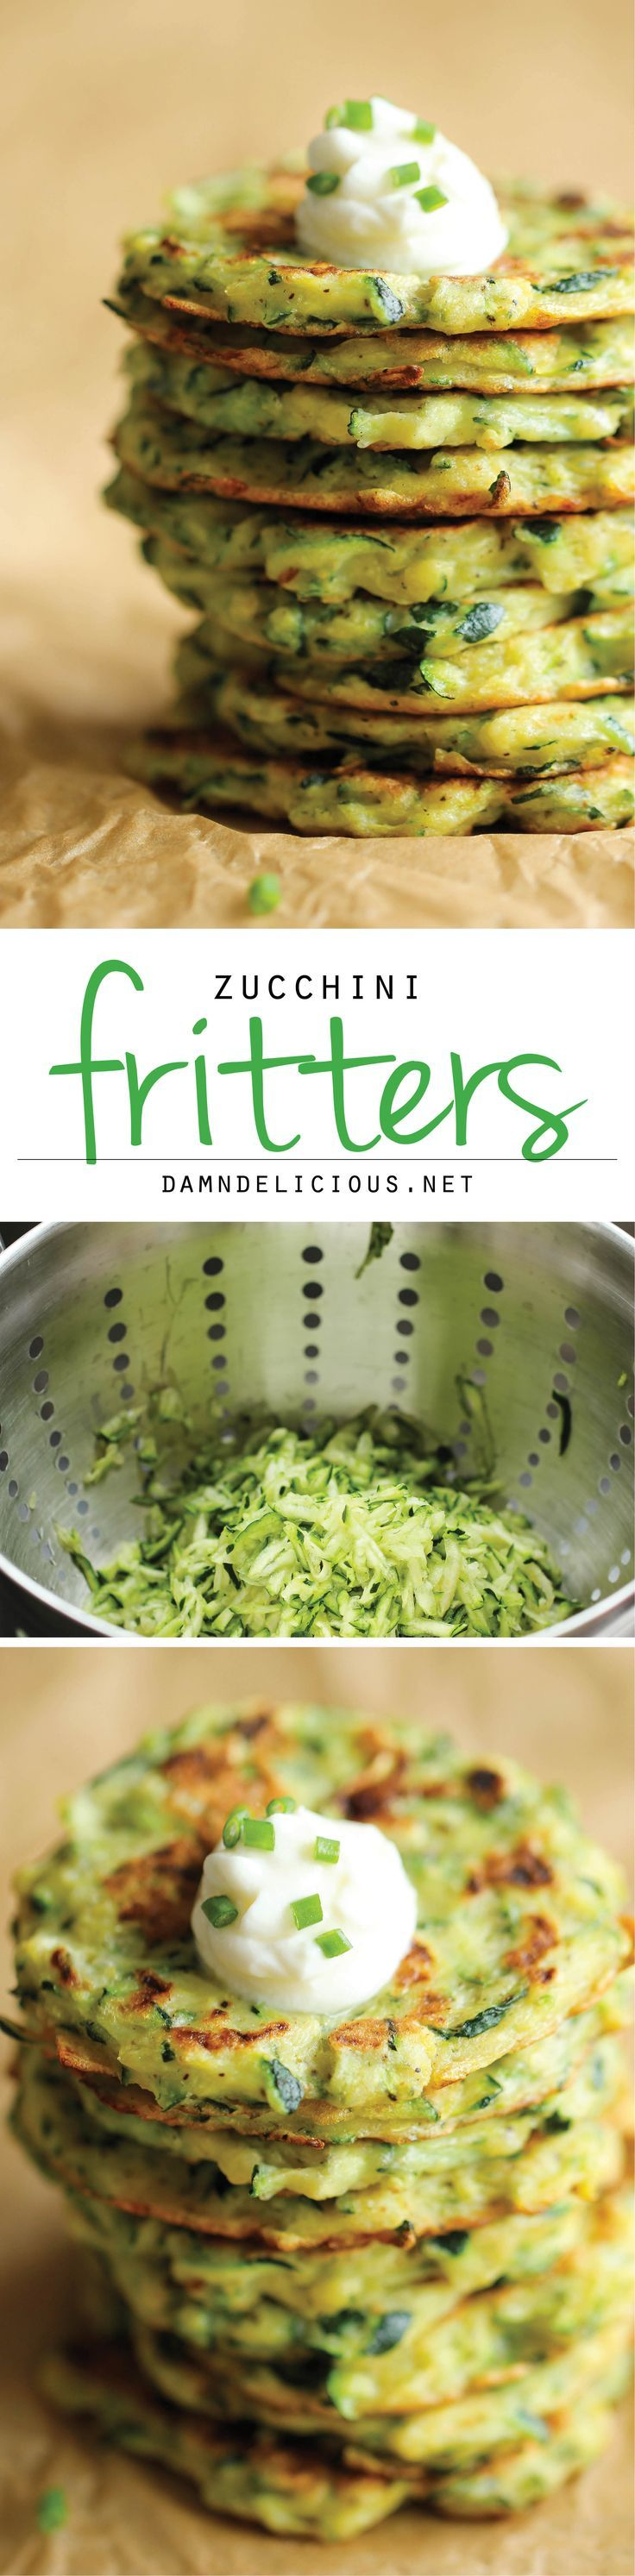 Zucchini Fritters - These fritters are unbelievably easy to make, low calorie, and the perfect way to sneak in some veggies! (scheduled via http://www.tailwindapp.com?utm_source=pinterest&utm_medium=twpin&utm_content=post469859&utm_campaign=scheduler_attribution)